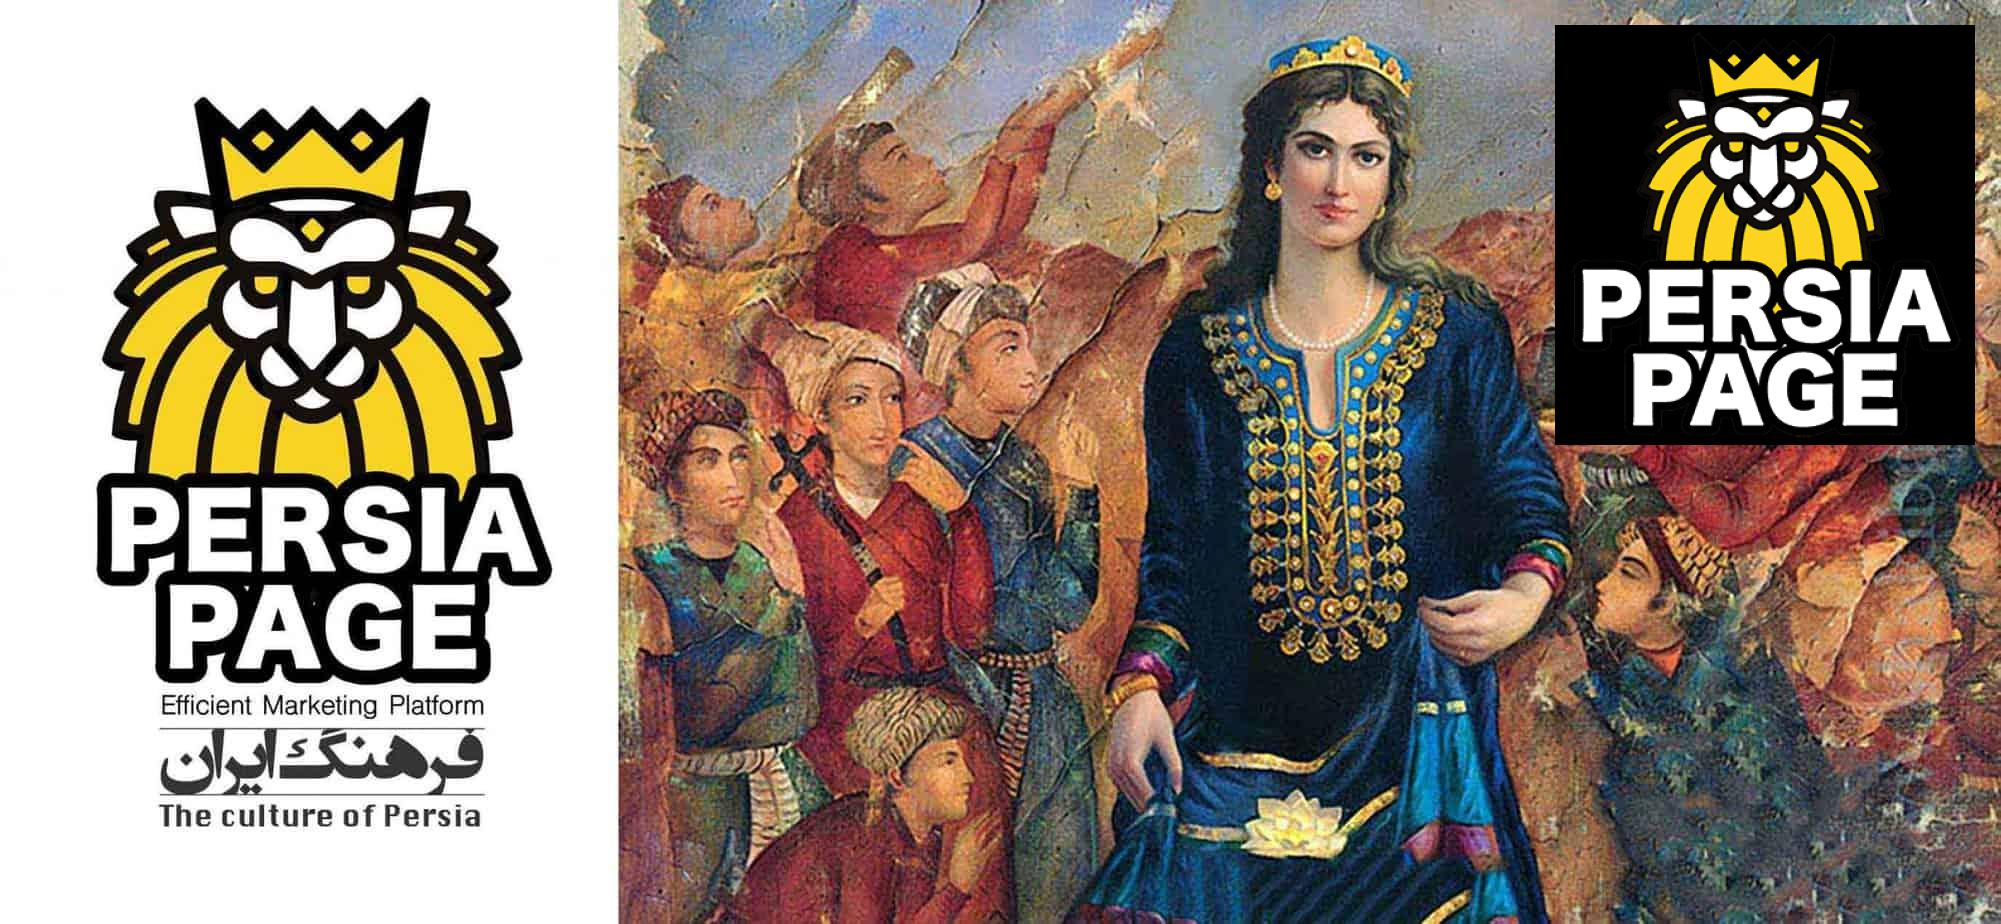 The culture of Persia